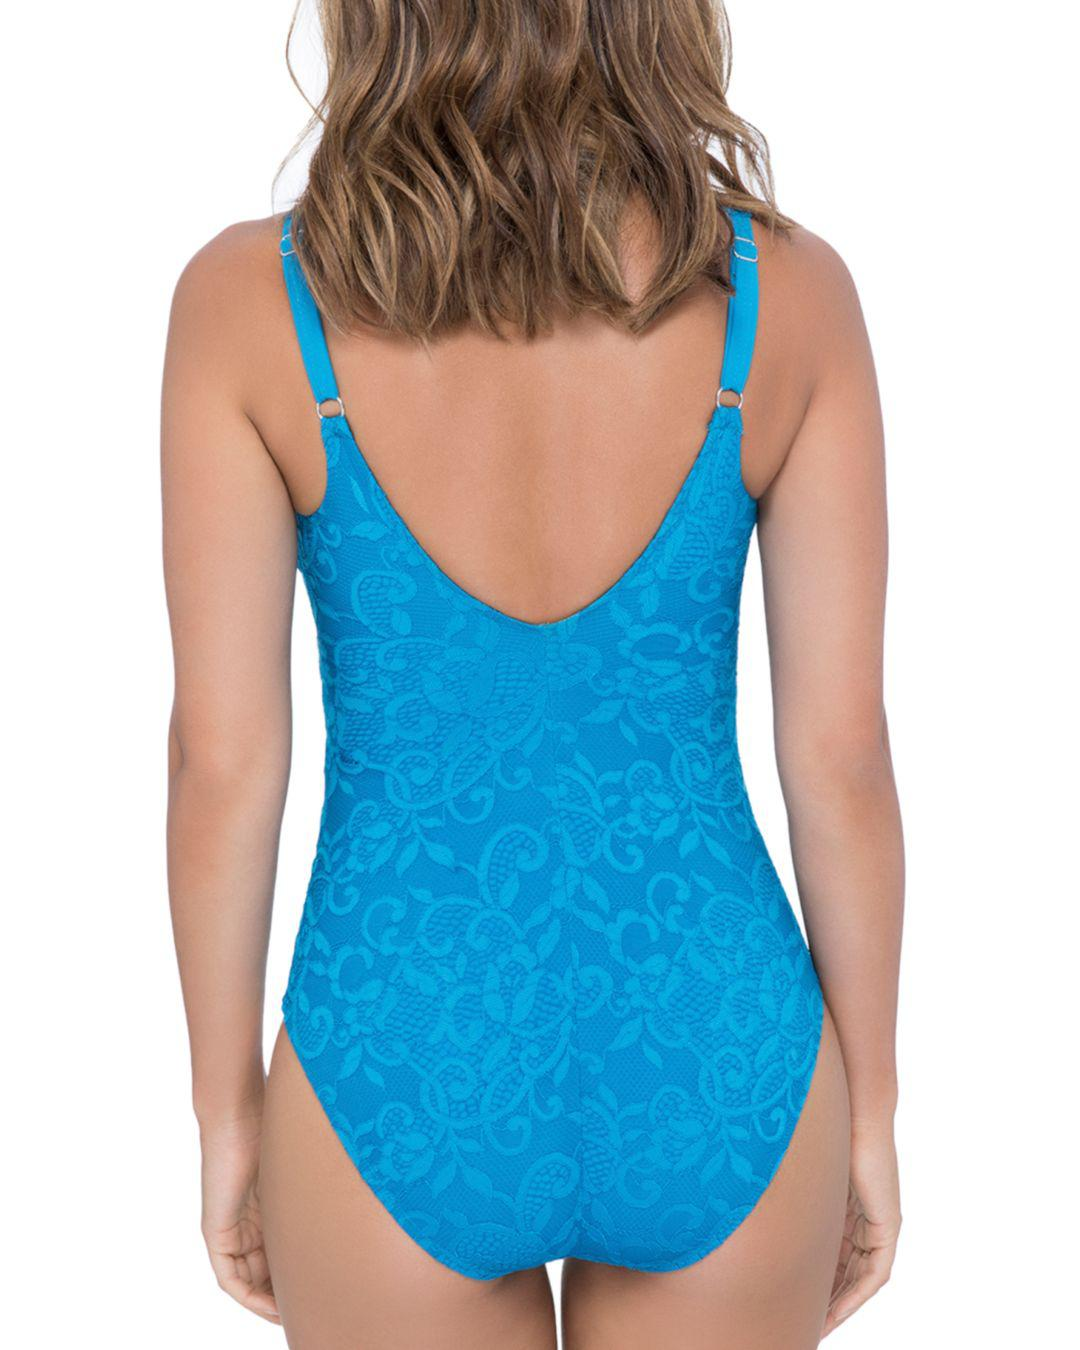 68b9b8ccdf06c Lyst - Gottex Shalimar D-cup Lace One Piece Swimsuit in Blue